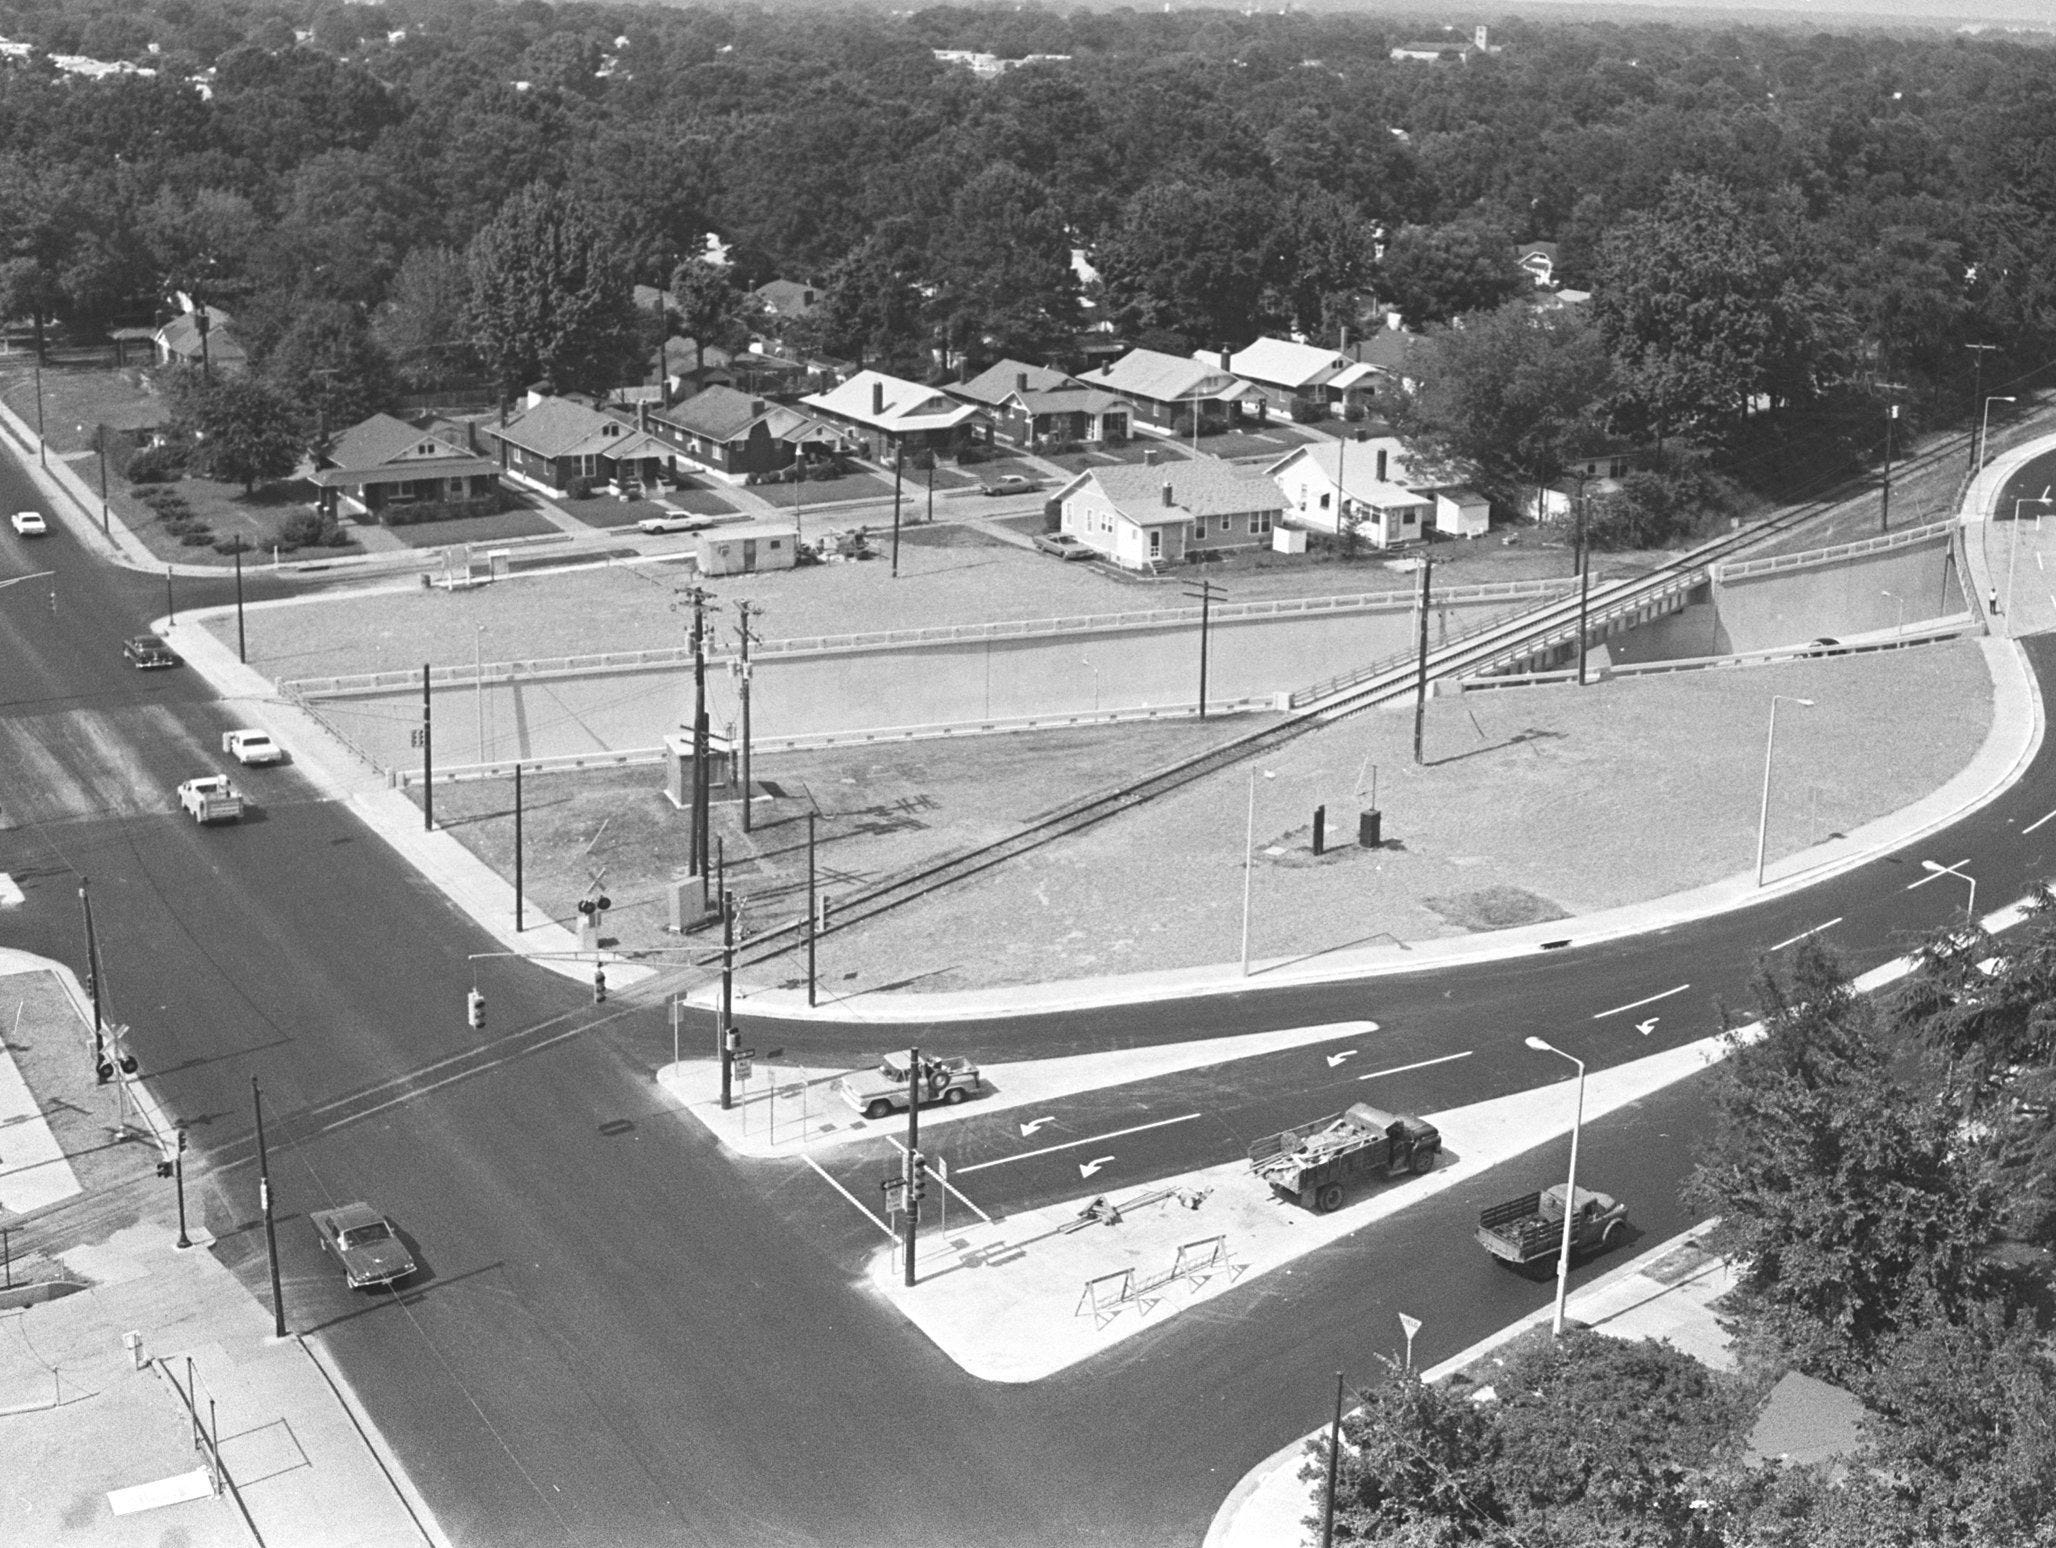 The North Parkway underpass at North Watkins (street at left edge of photograph) opened to traffic in June 1968 after being under construction for 19 months. Construction had caused several detours to be set up in the area from Claybrook to Stonewall. The depressed highway, in planning for more than 10 years, was financed with state and federal funds but has no connection with the proposed east-west expressway. North Parkway runs across the center of the photograph, which was taken looking to the northeast.